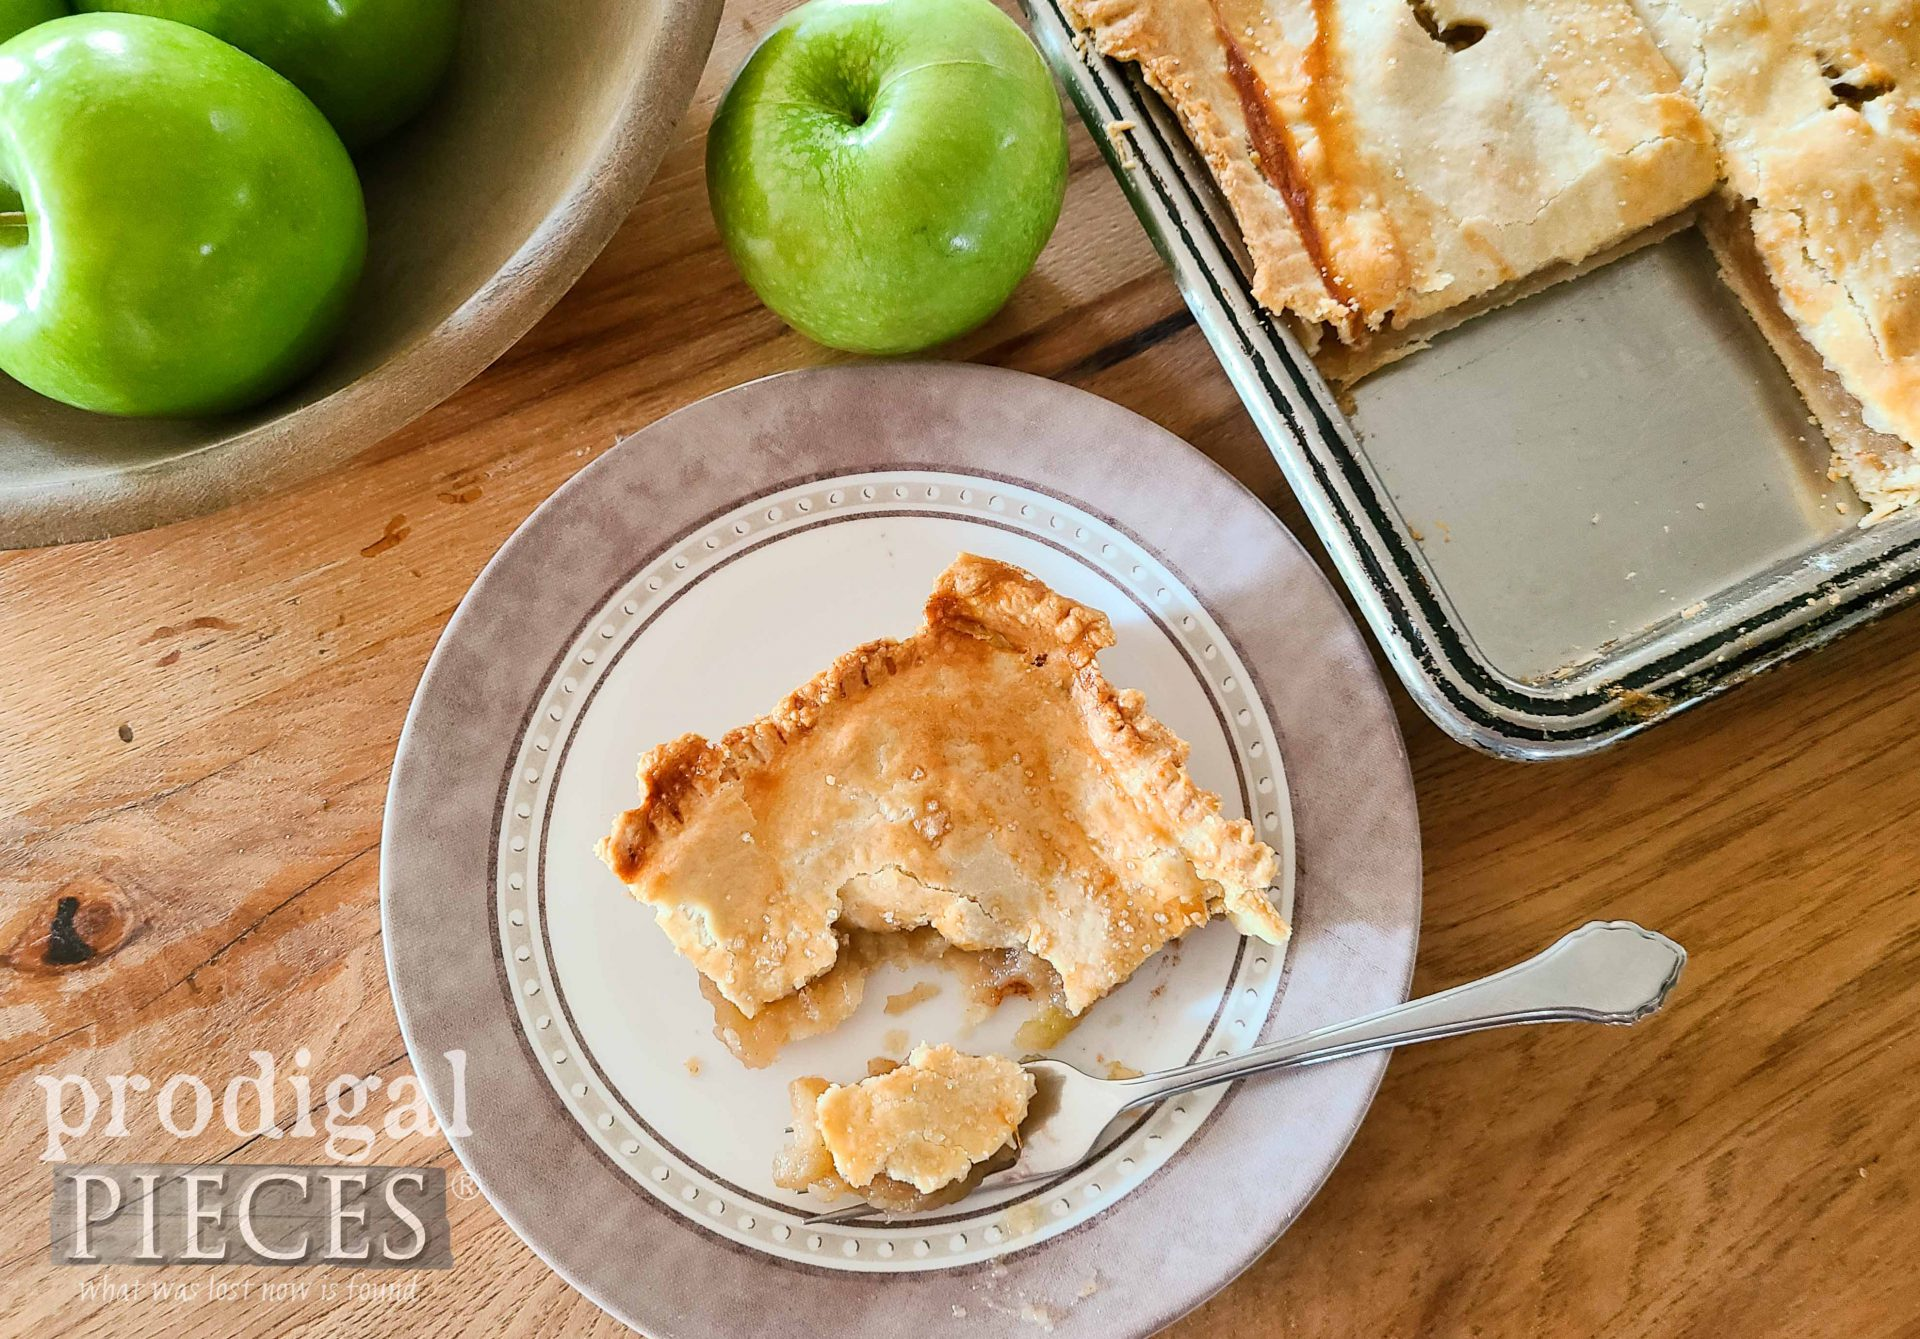 Rustic Apple Jack Dessert Recipe with Video Tutorial by Larissa of Prodigal Pieces | prodigalpieces.com #prodigalpieces #food #recipe #nomnom #baking #dessert #fall #apple #thanksgiving